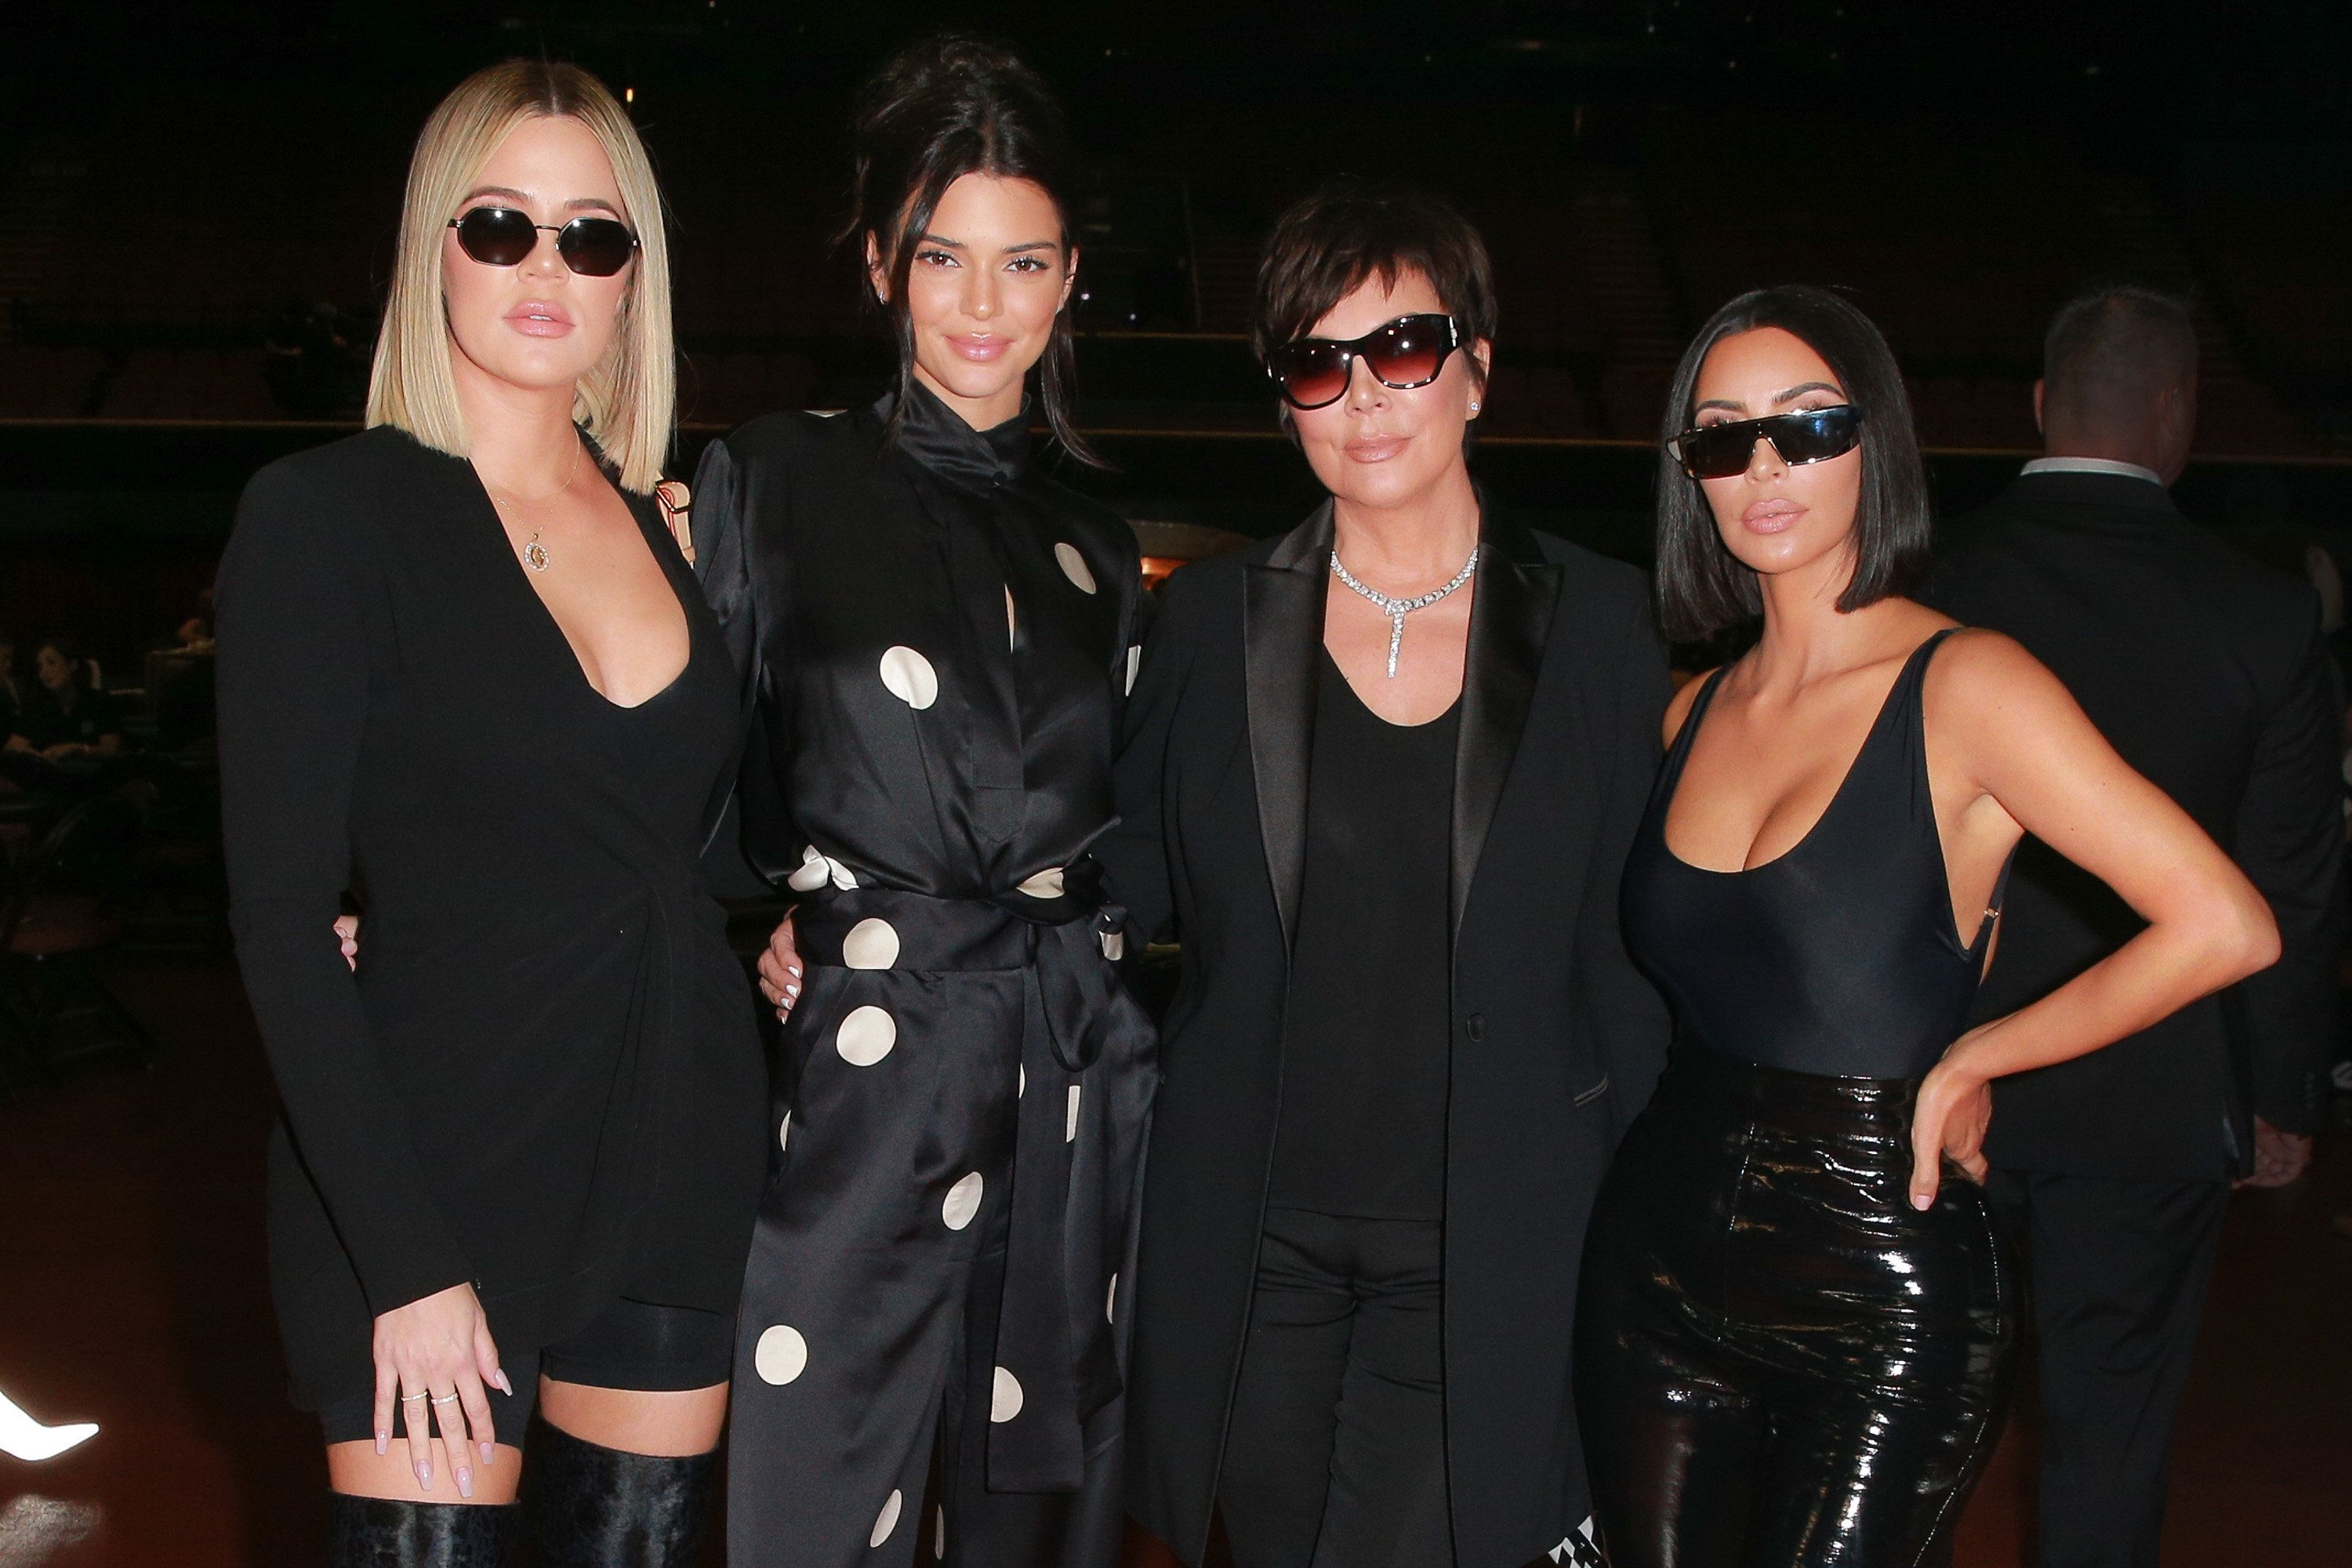 Watching 'Keeping Up With The Kardashians' May Make You A Worse Person, Study